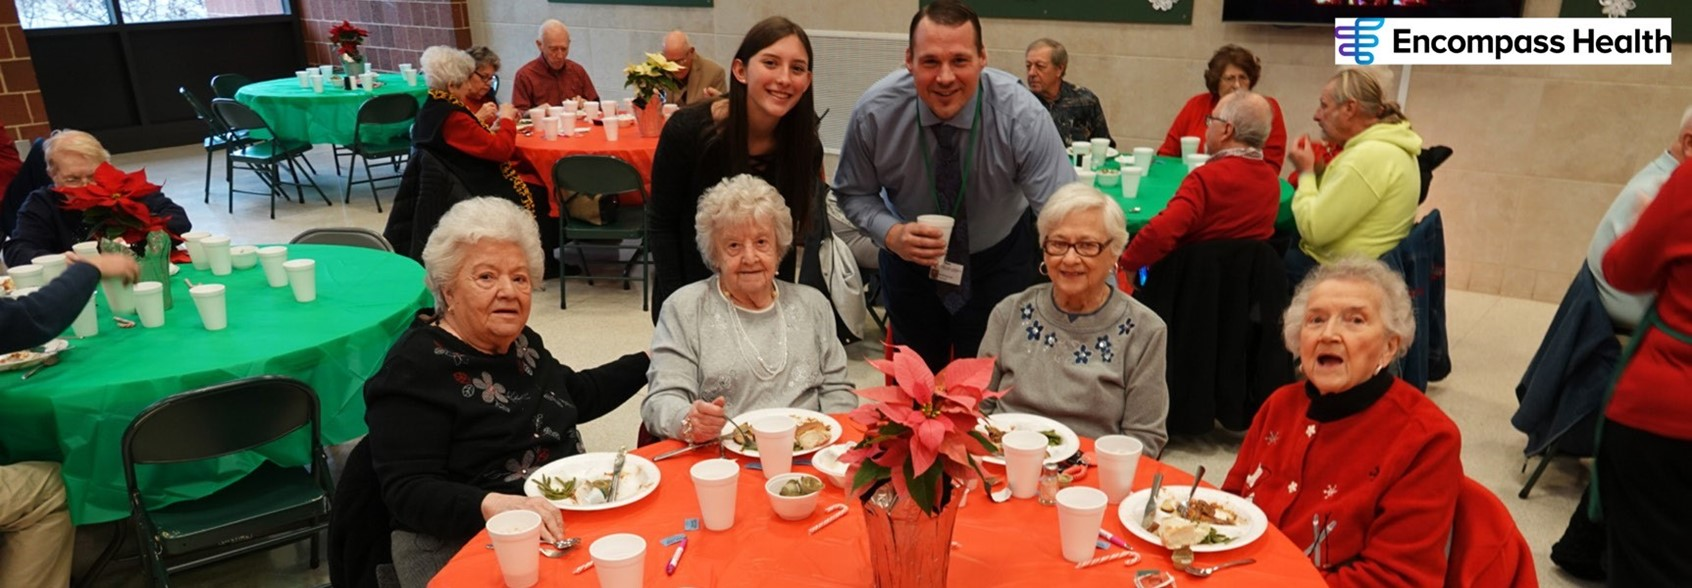 Student Council to host FREE annual senior citizens holiday luncheon, Dec. 18